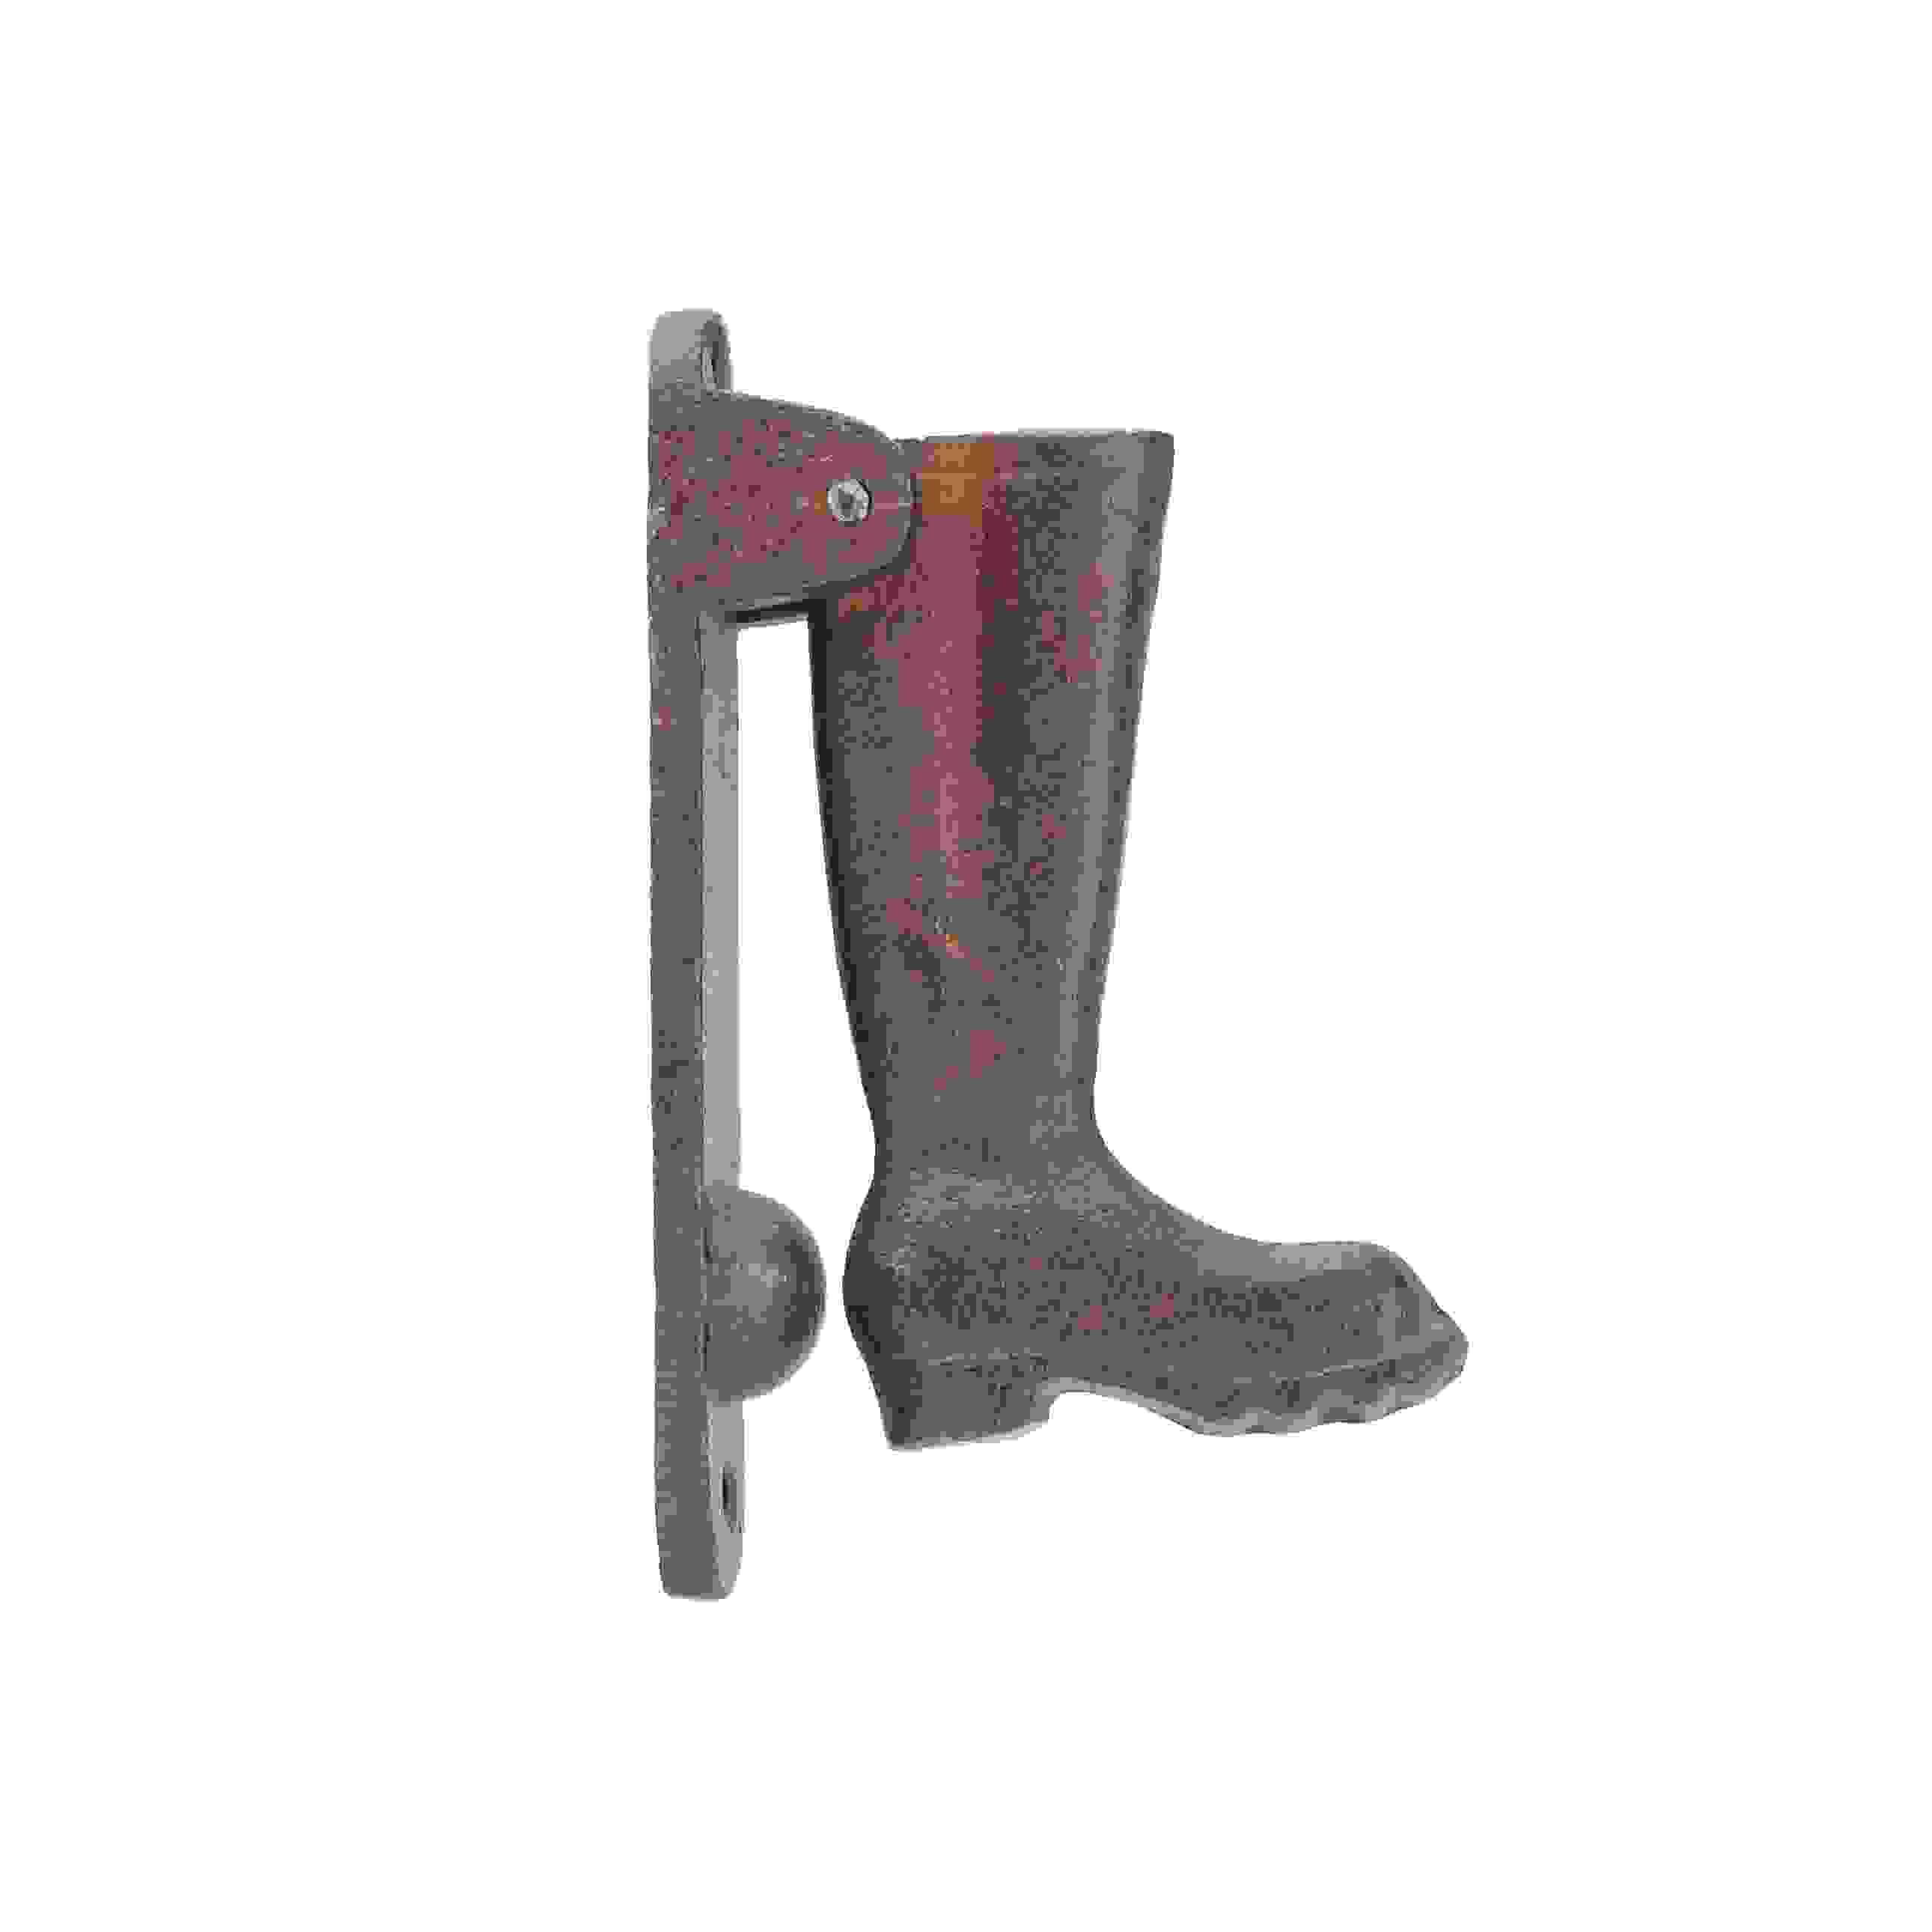 DOOR KNOCKER - BOOT